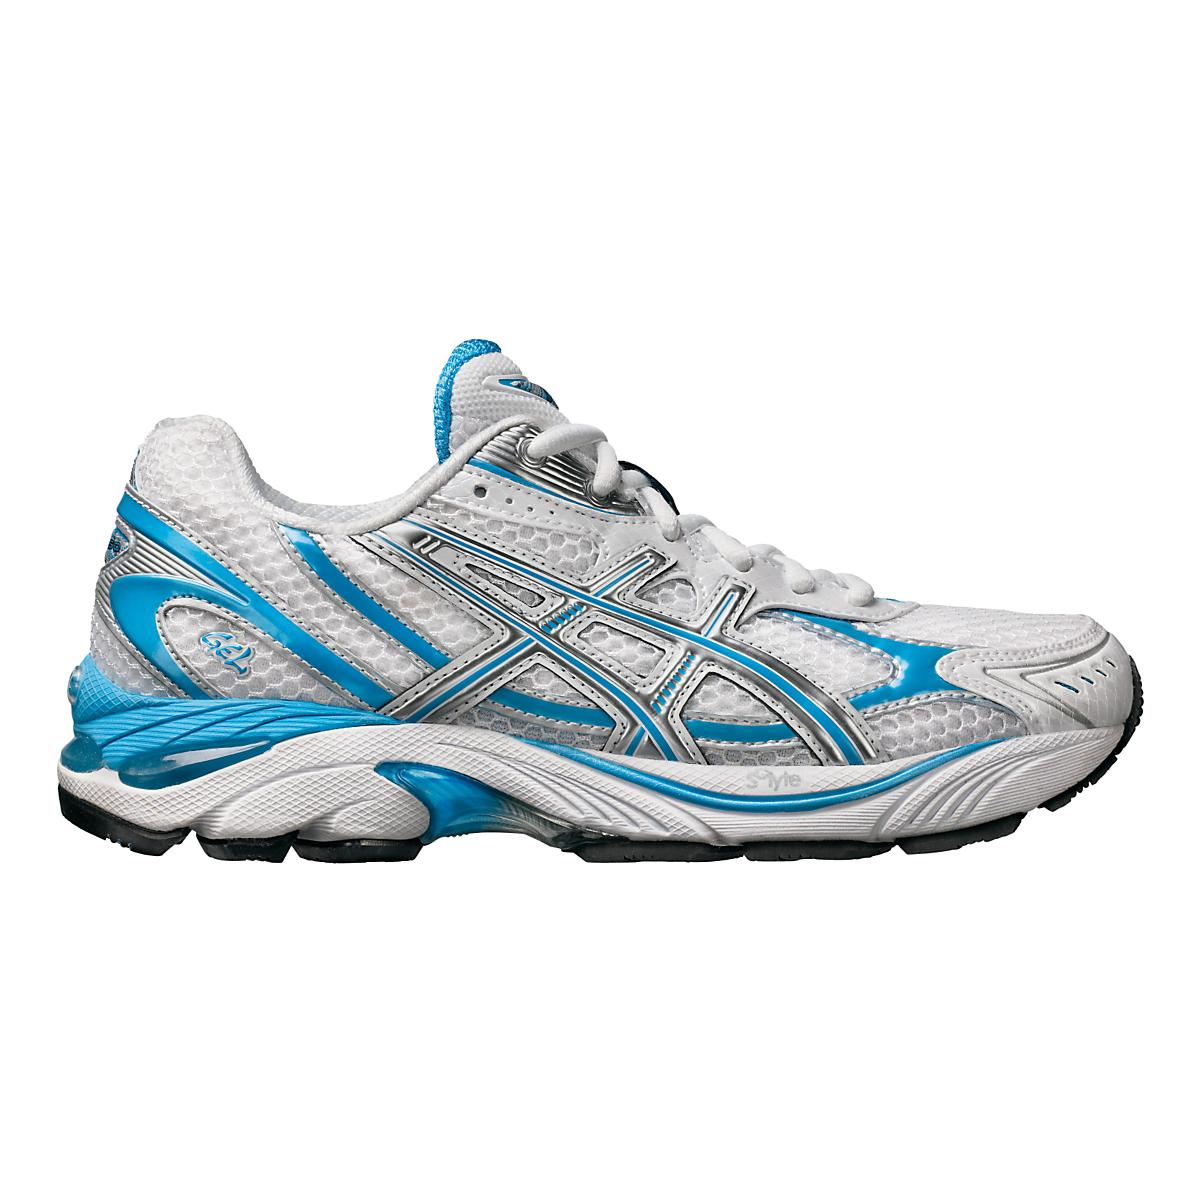 1a203606d928 Womens ASICS GT-2150 Running Shoe at Road Runner Sports